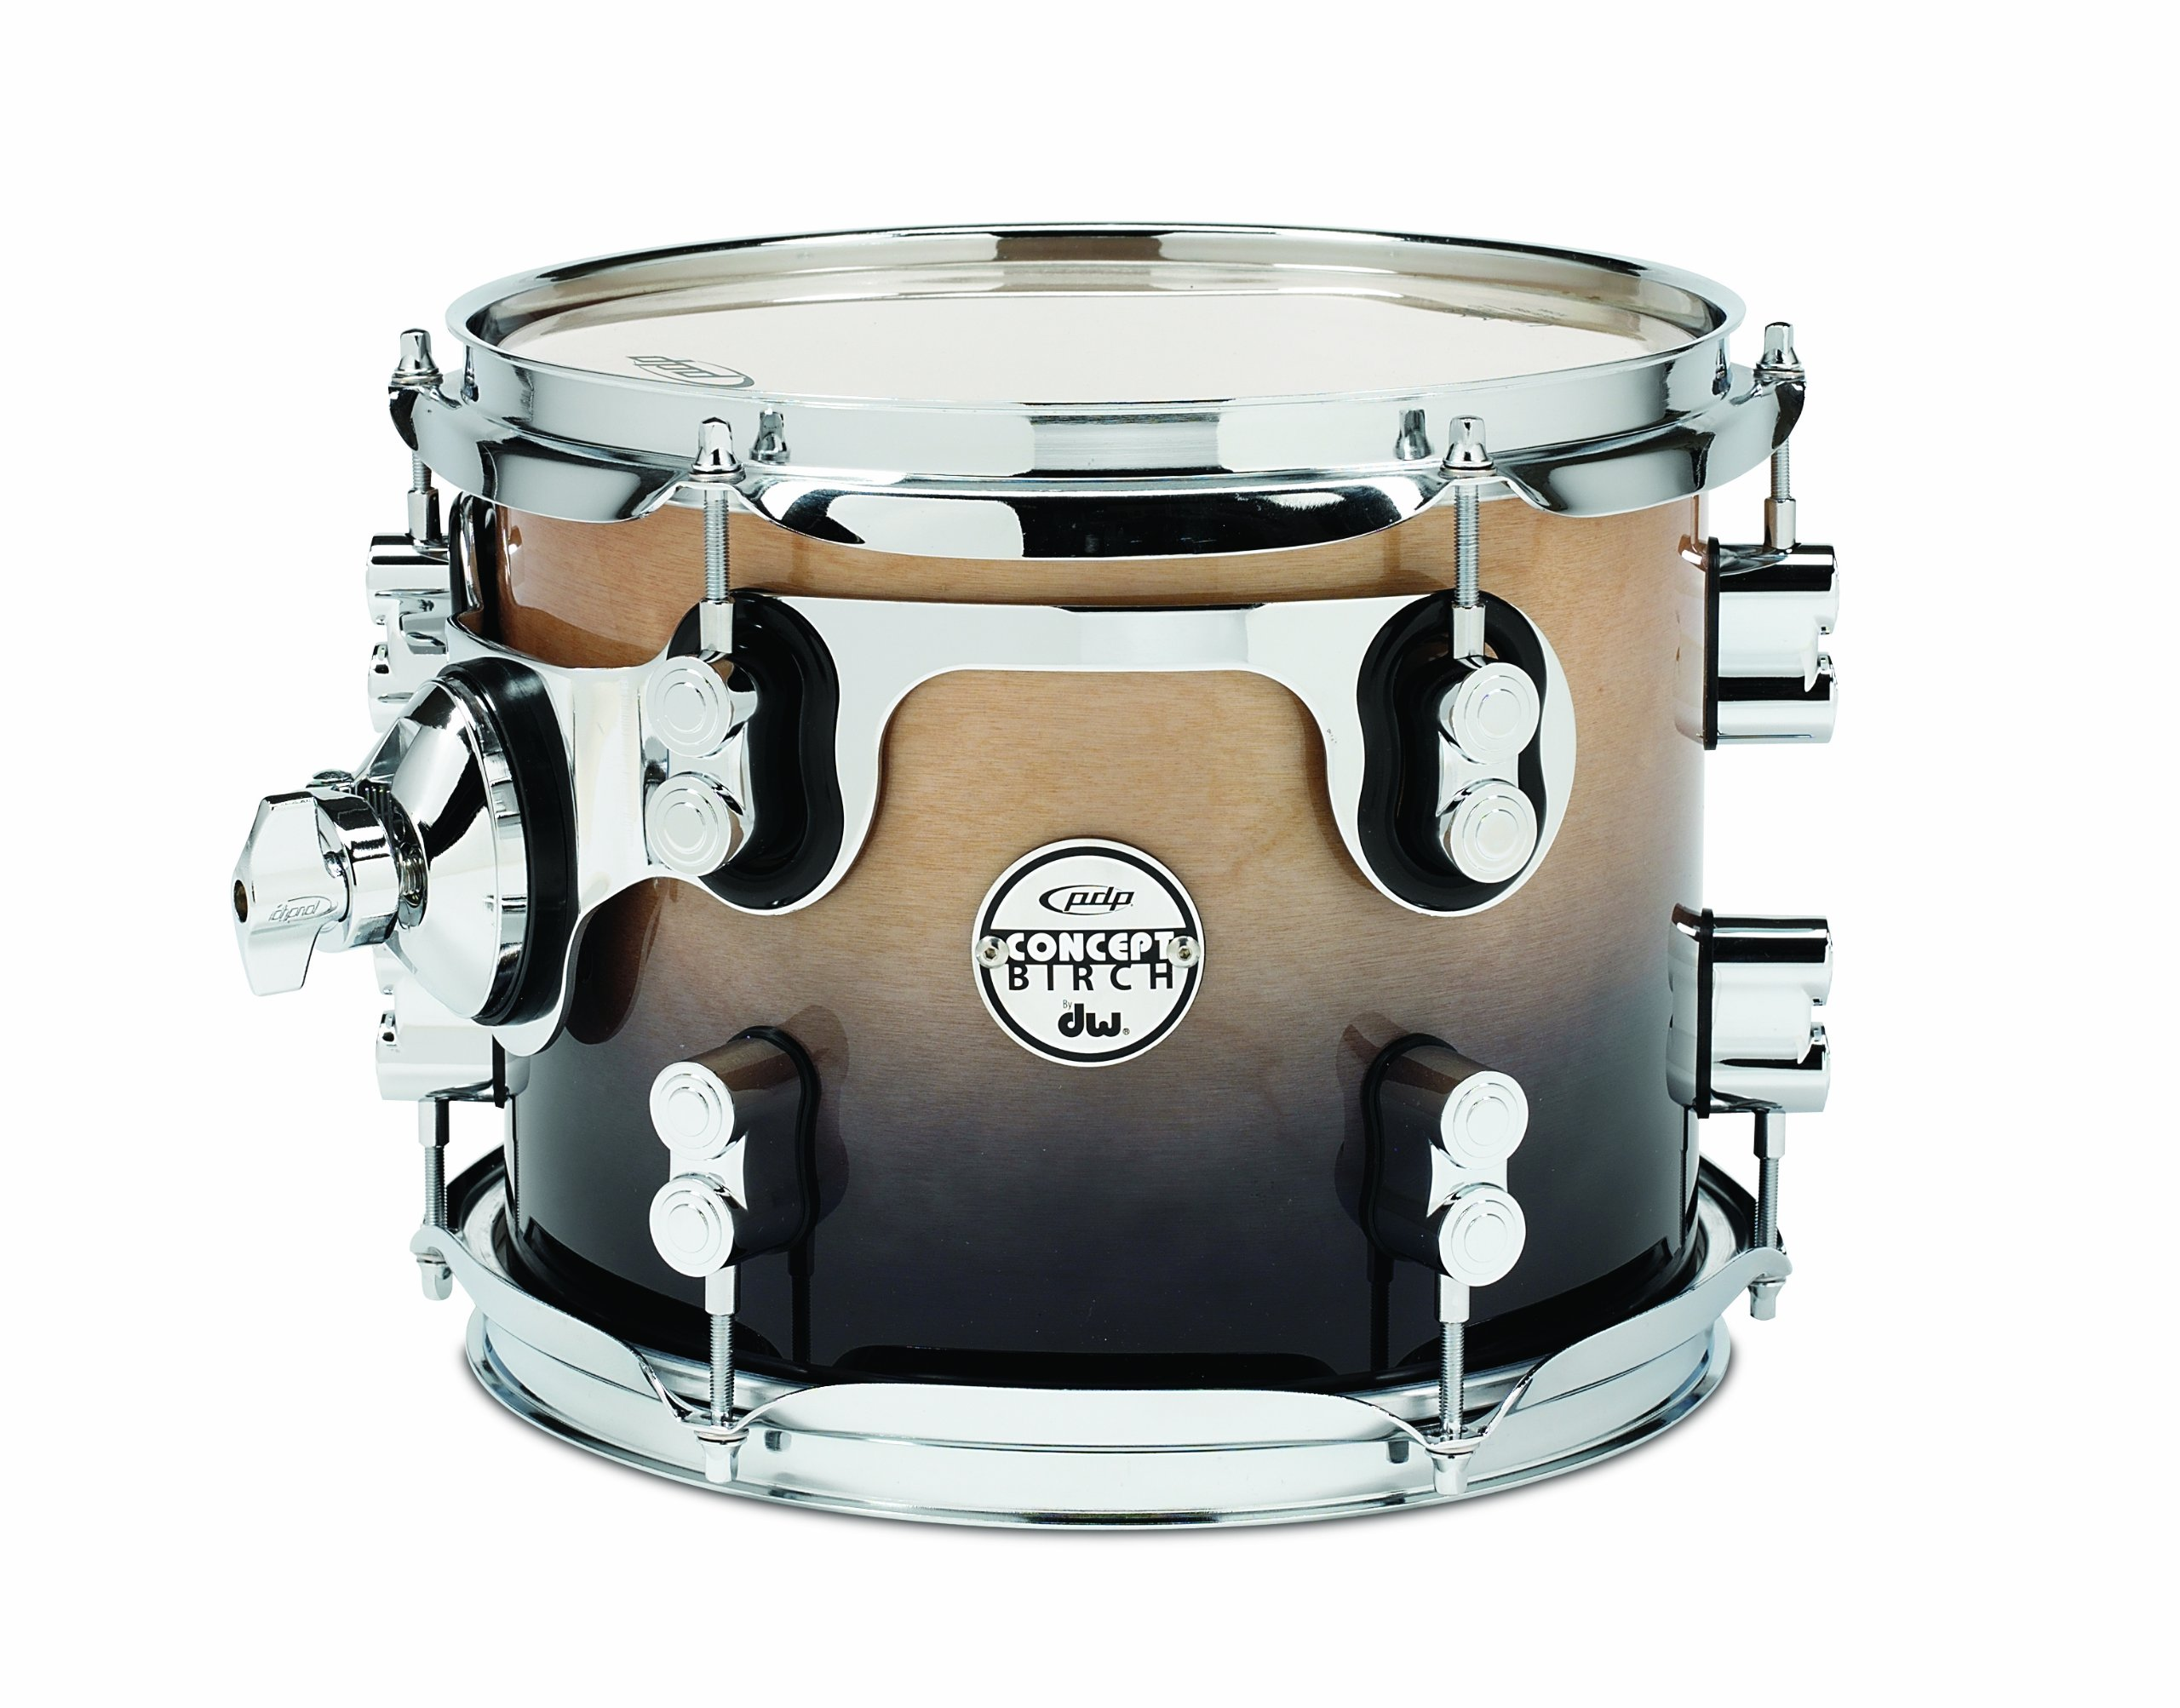 Pacific Drums PDCB0810STNC 8 x 10 Inches Tom with Chrome Hardware - Natural to Charcoal Fade